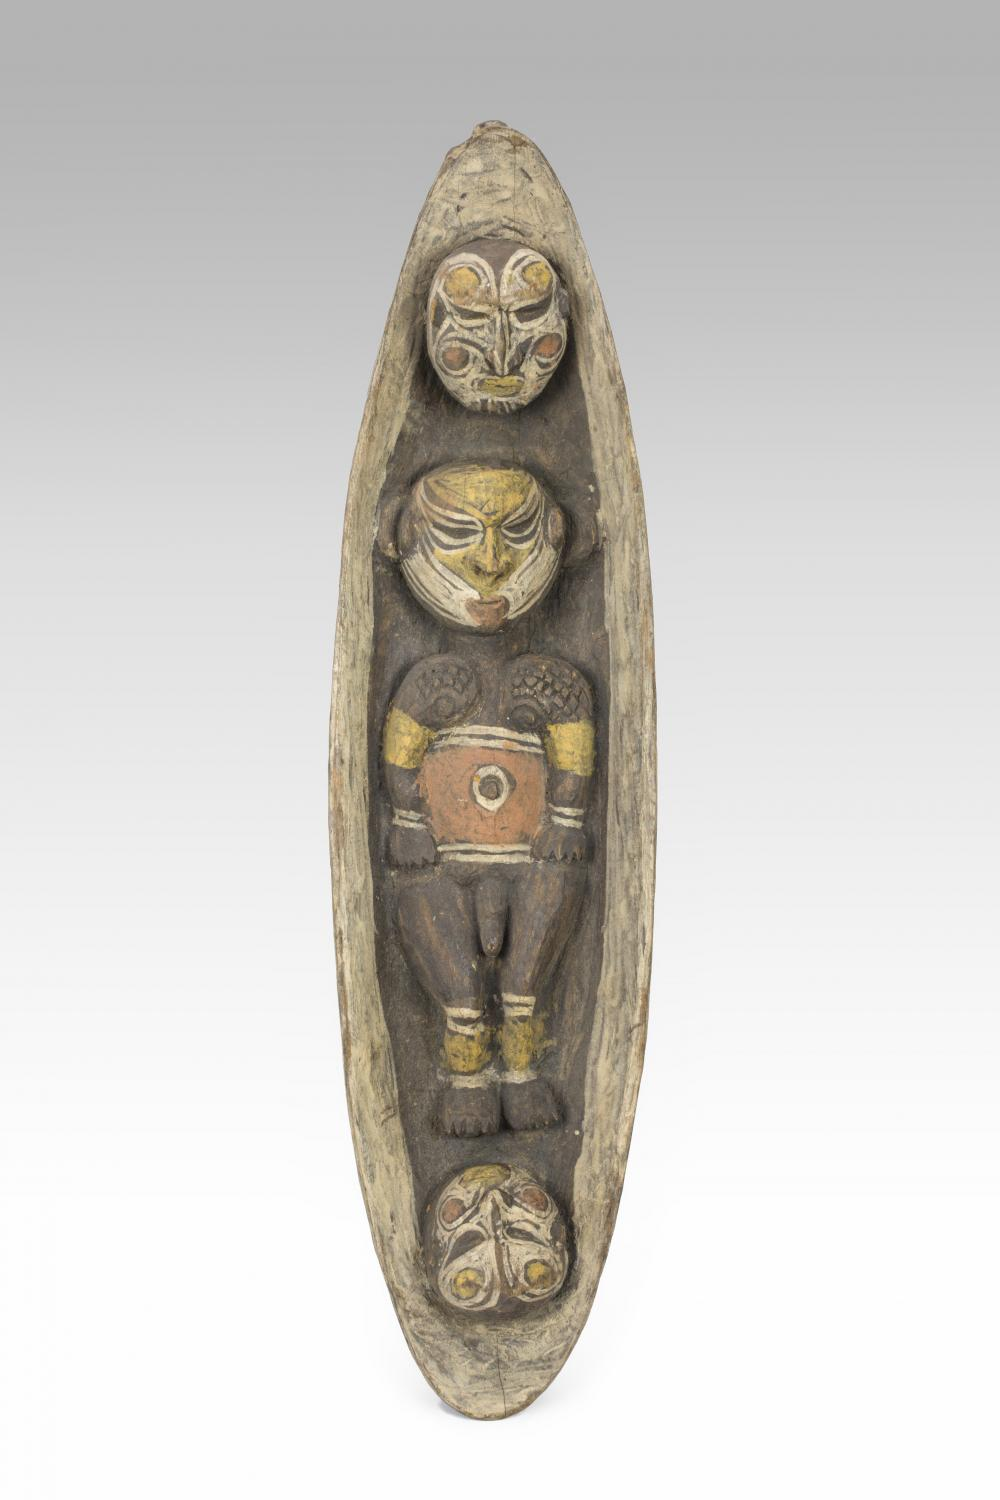 Boat carving, 20th century, New Guinea, Melanesia